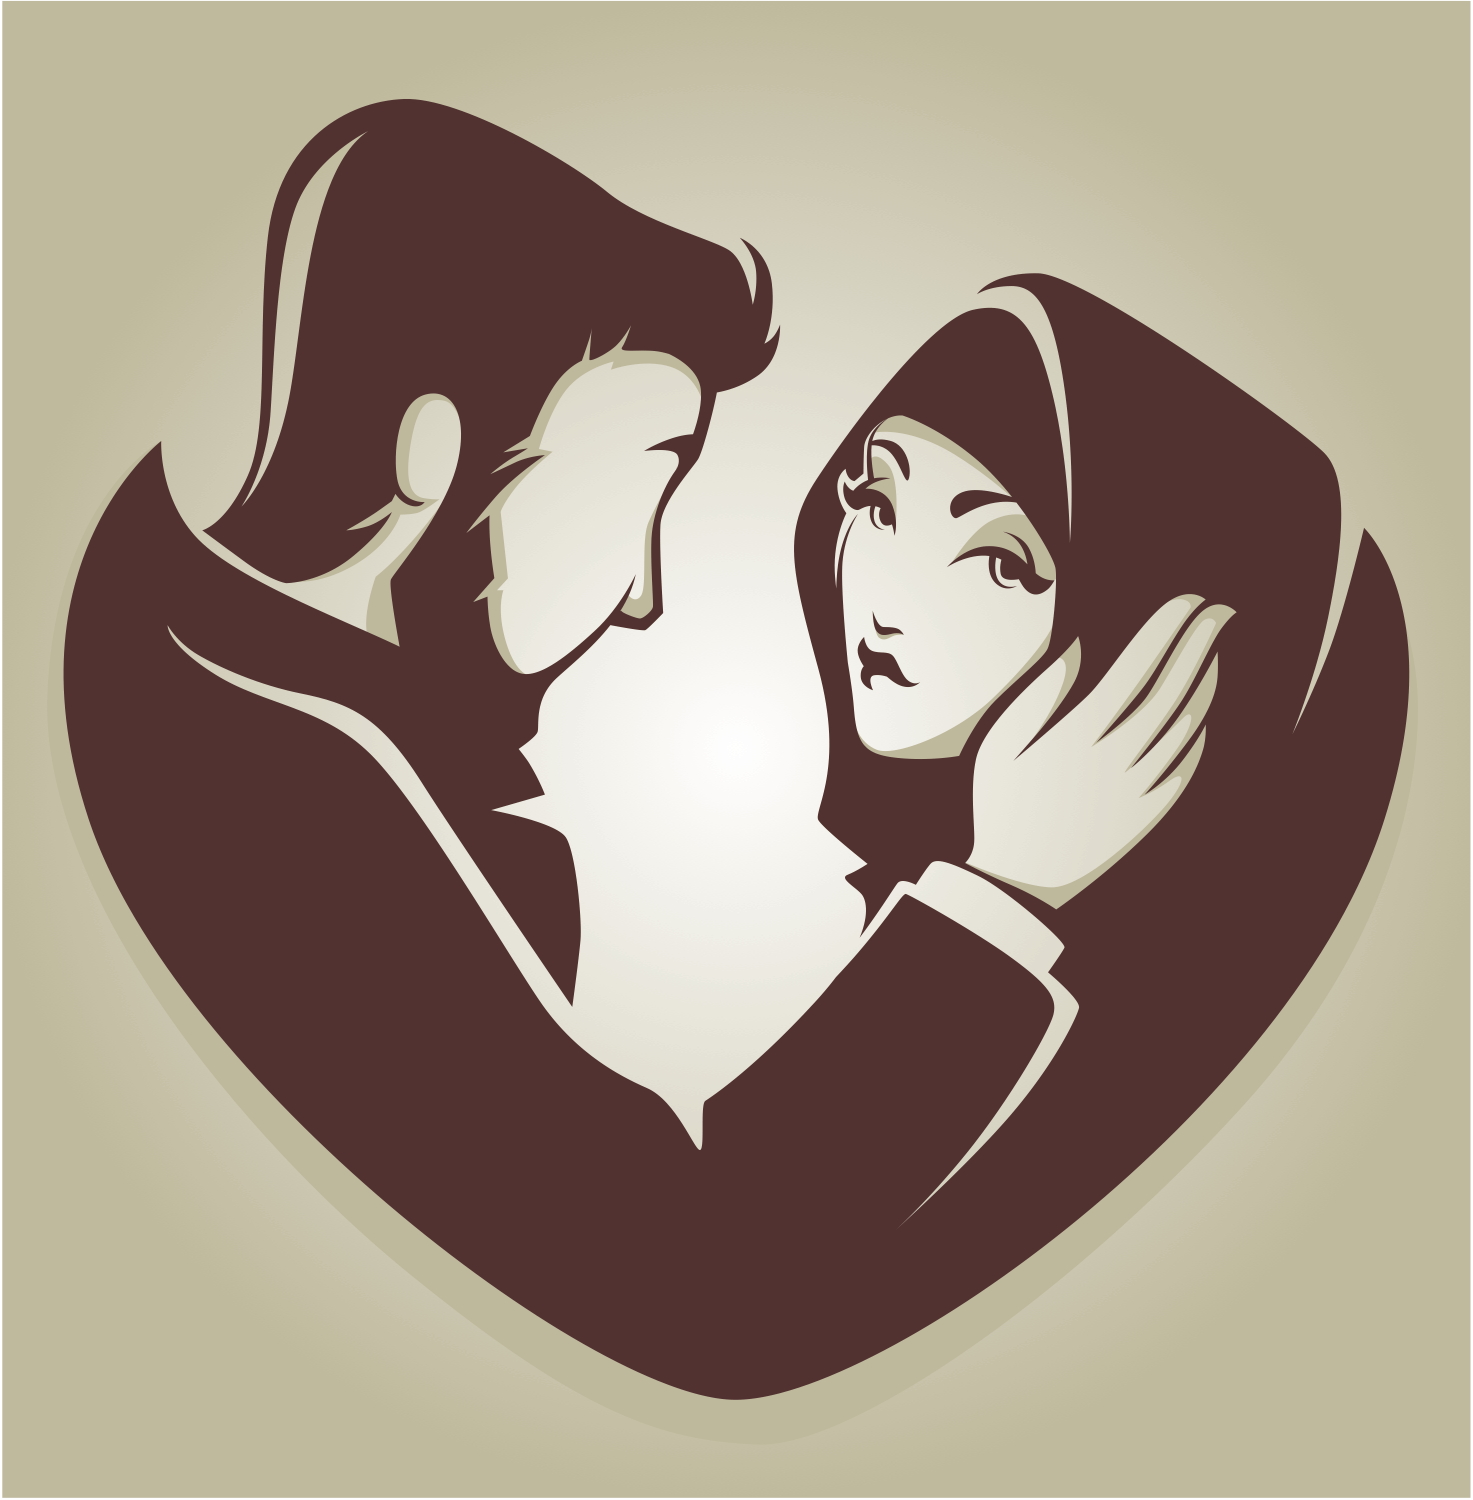 Why Marriage is Important in Islam